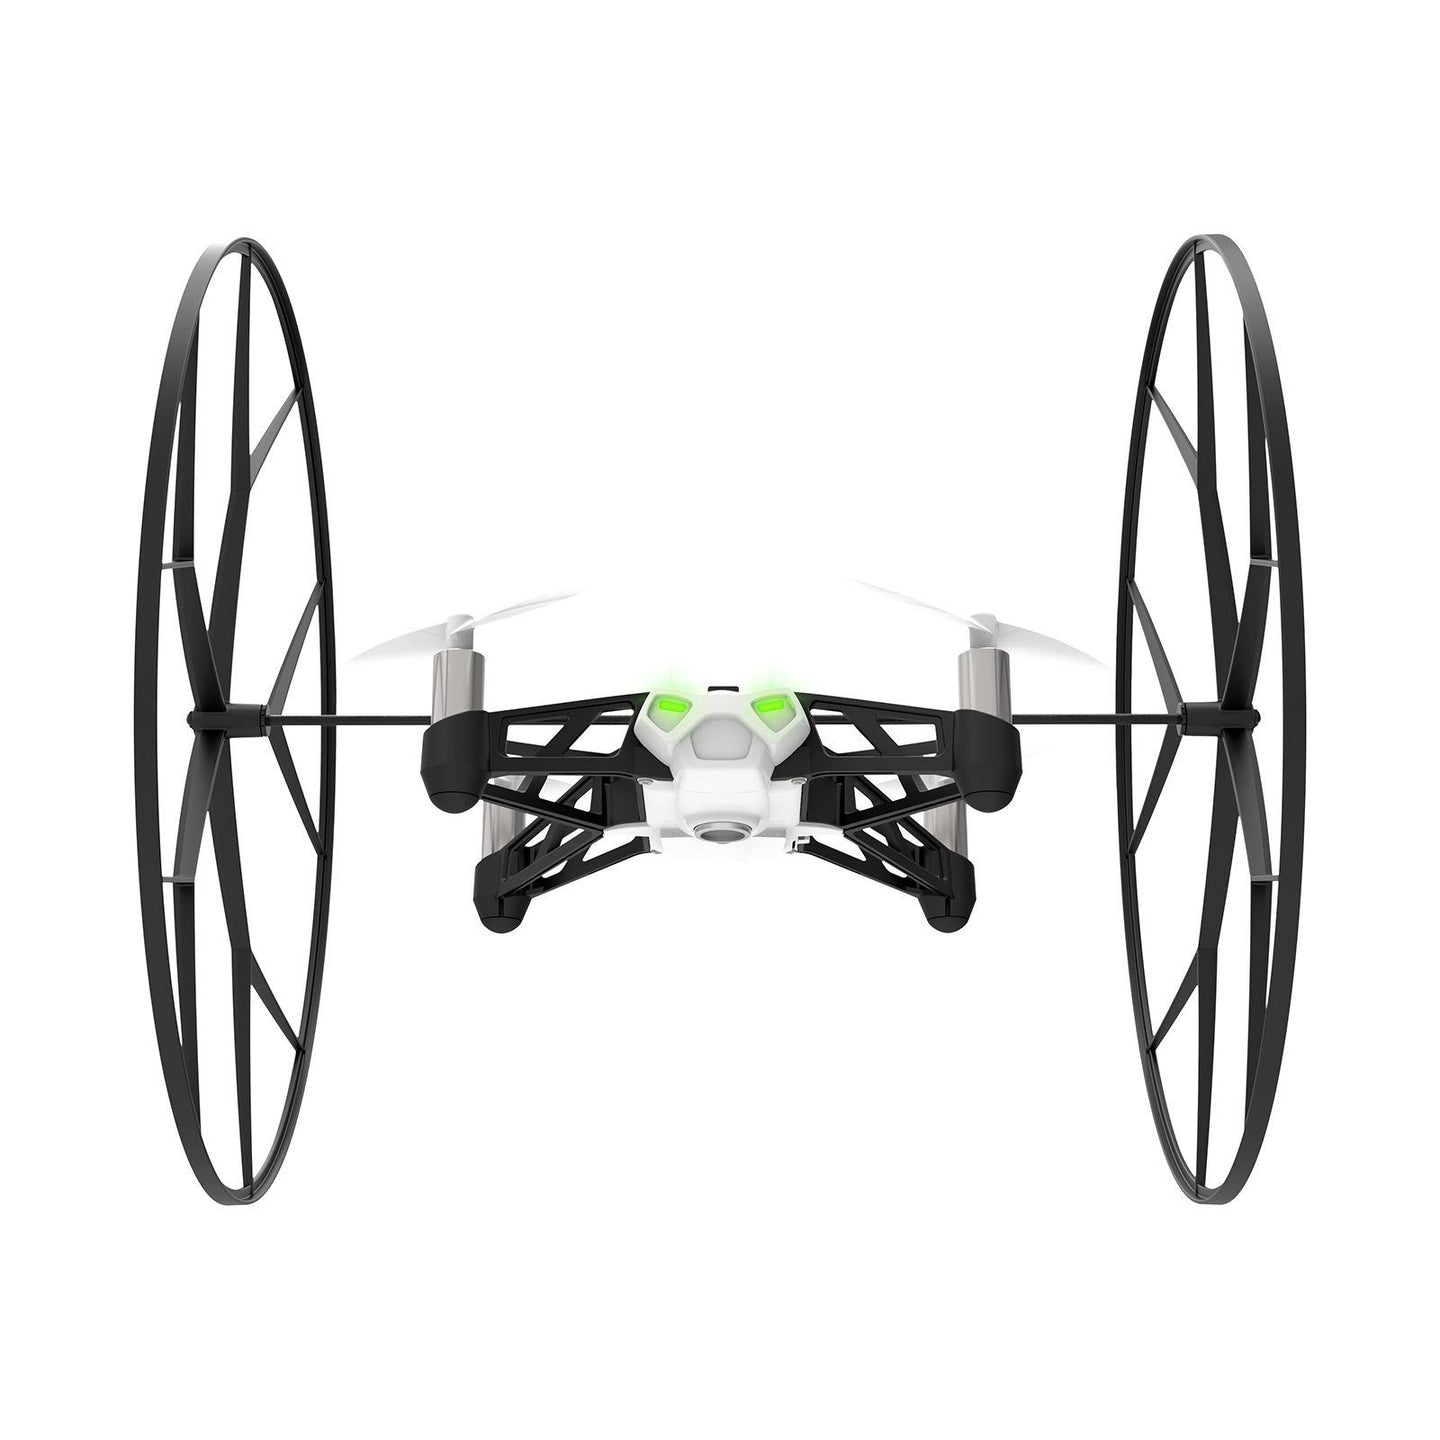 Parrot MiniDrones Rolling Spider Quadcopter with HD Camera Robotic Toys White